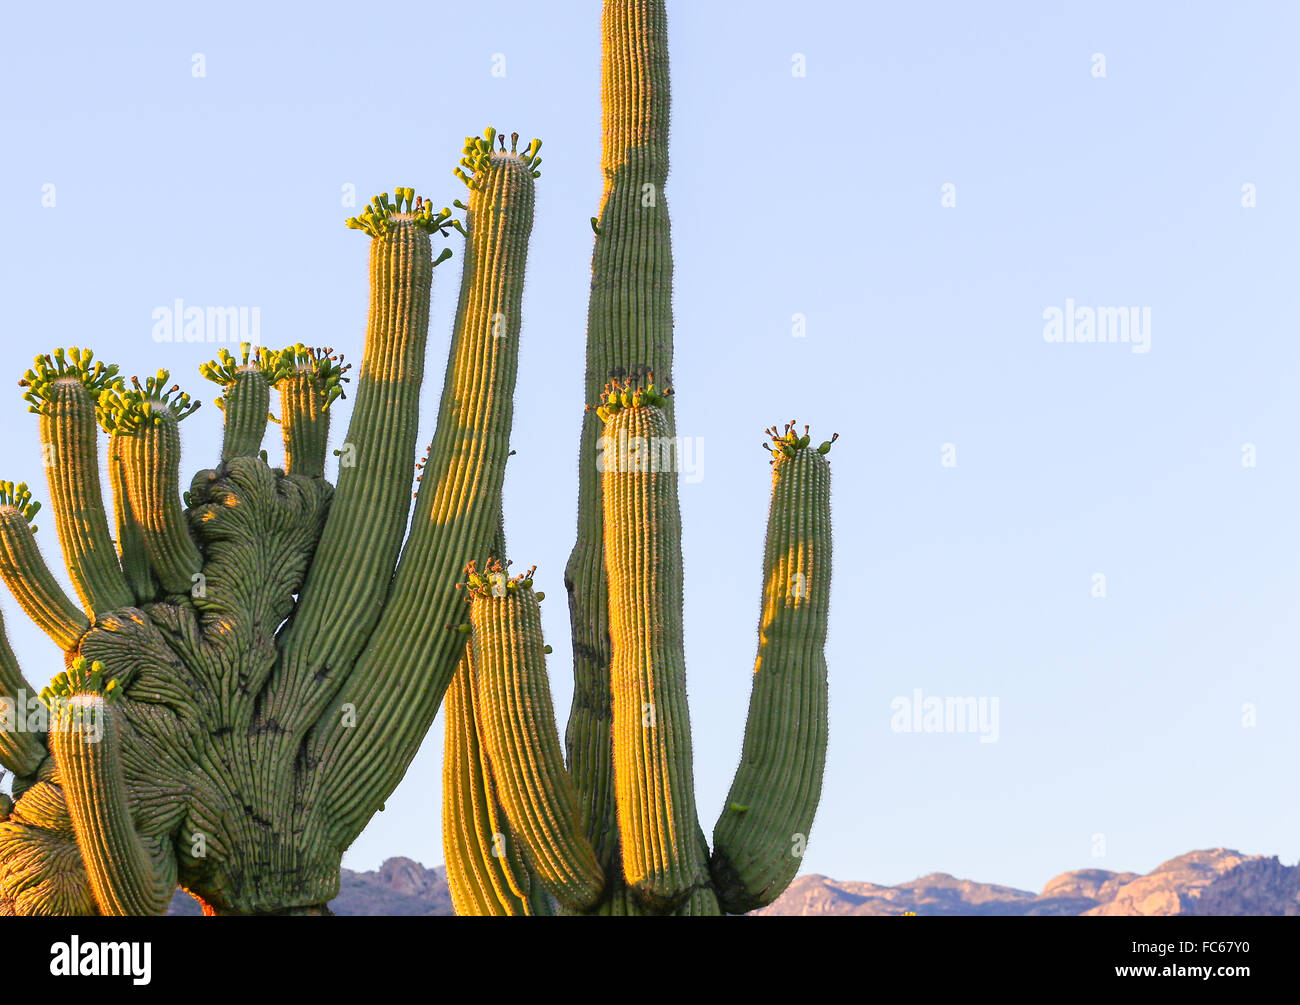 Crested saguaro - Stock Image